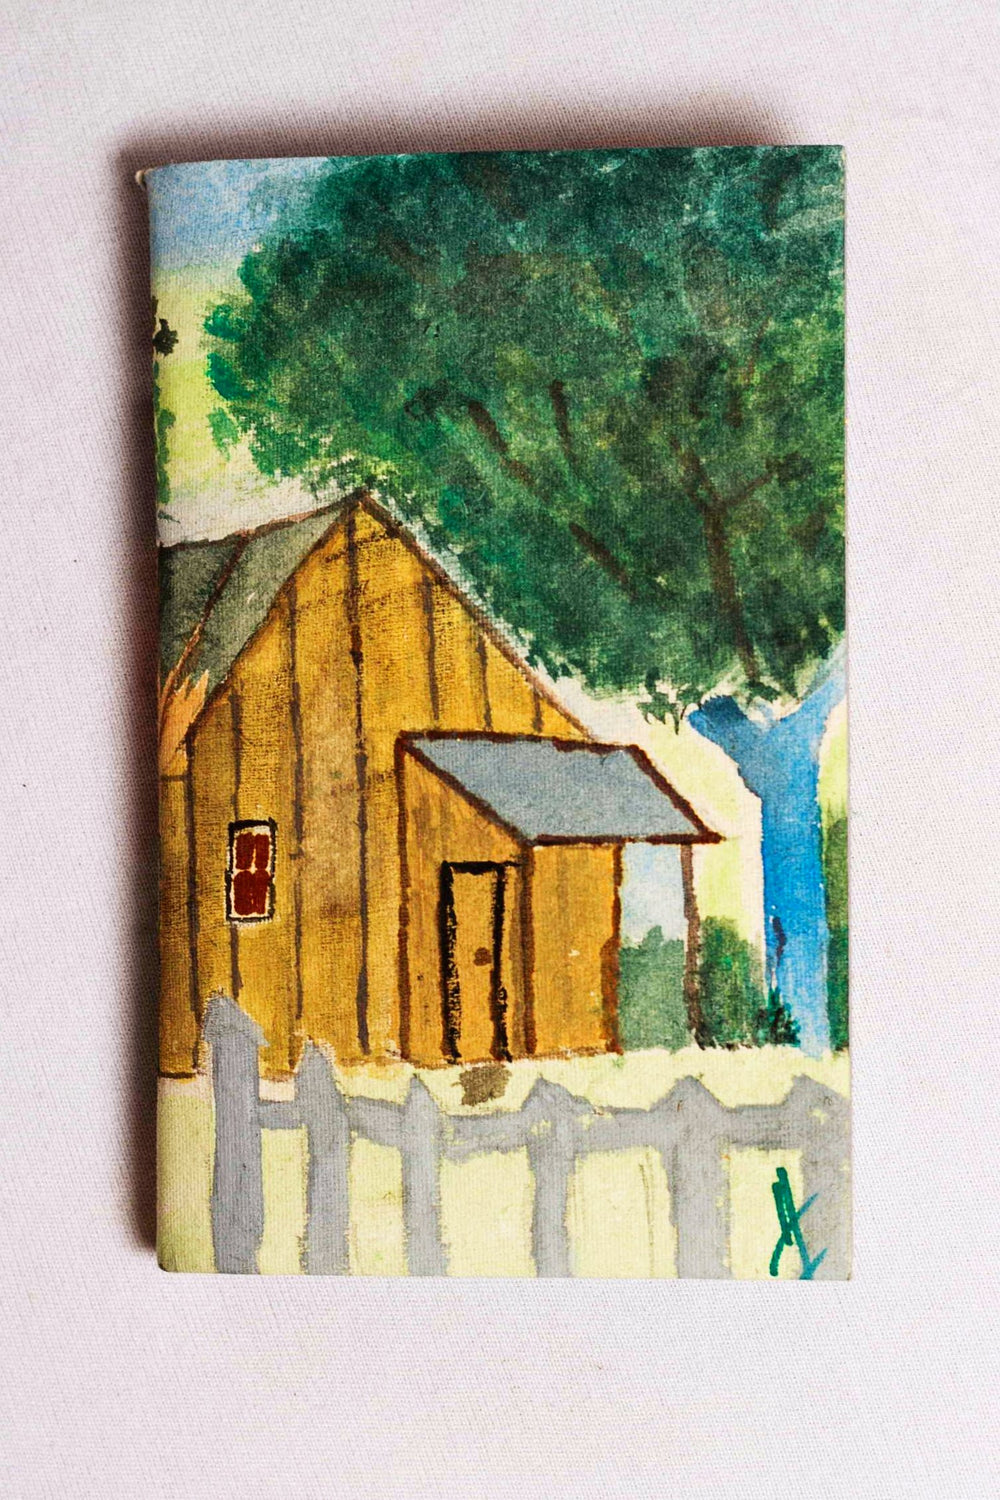 Hand painted scenery cover handmade paper notebook